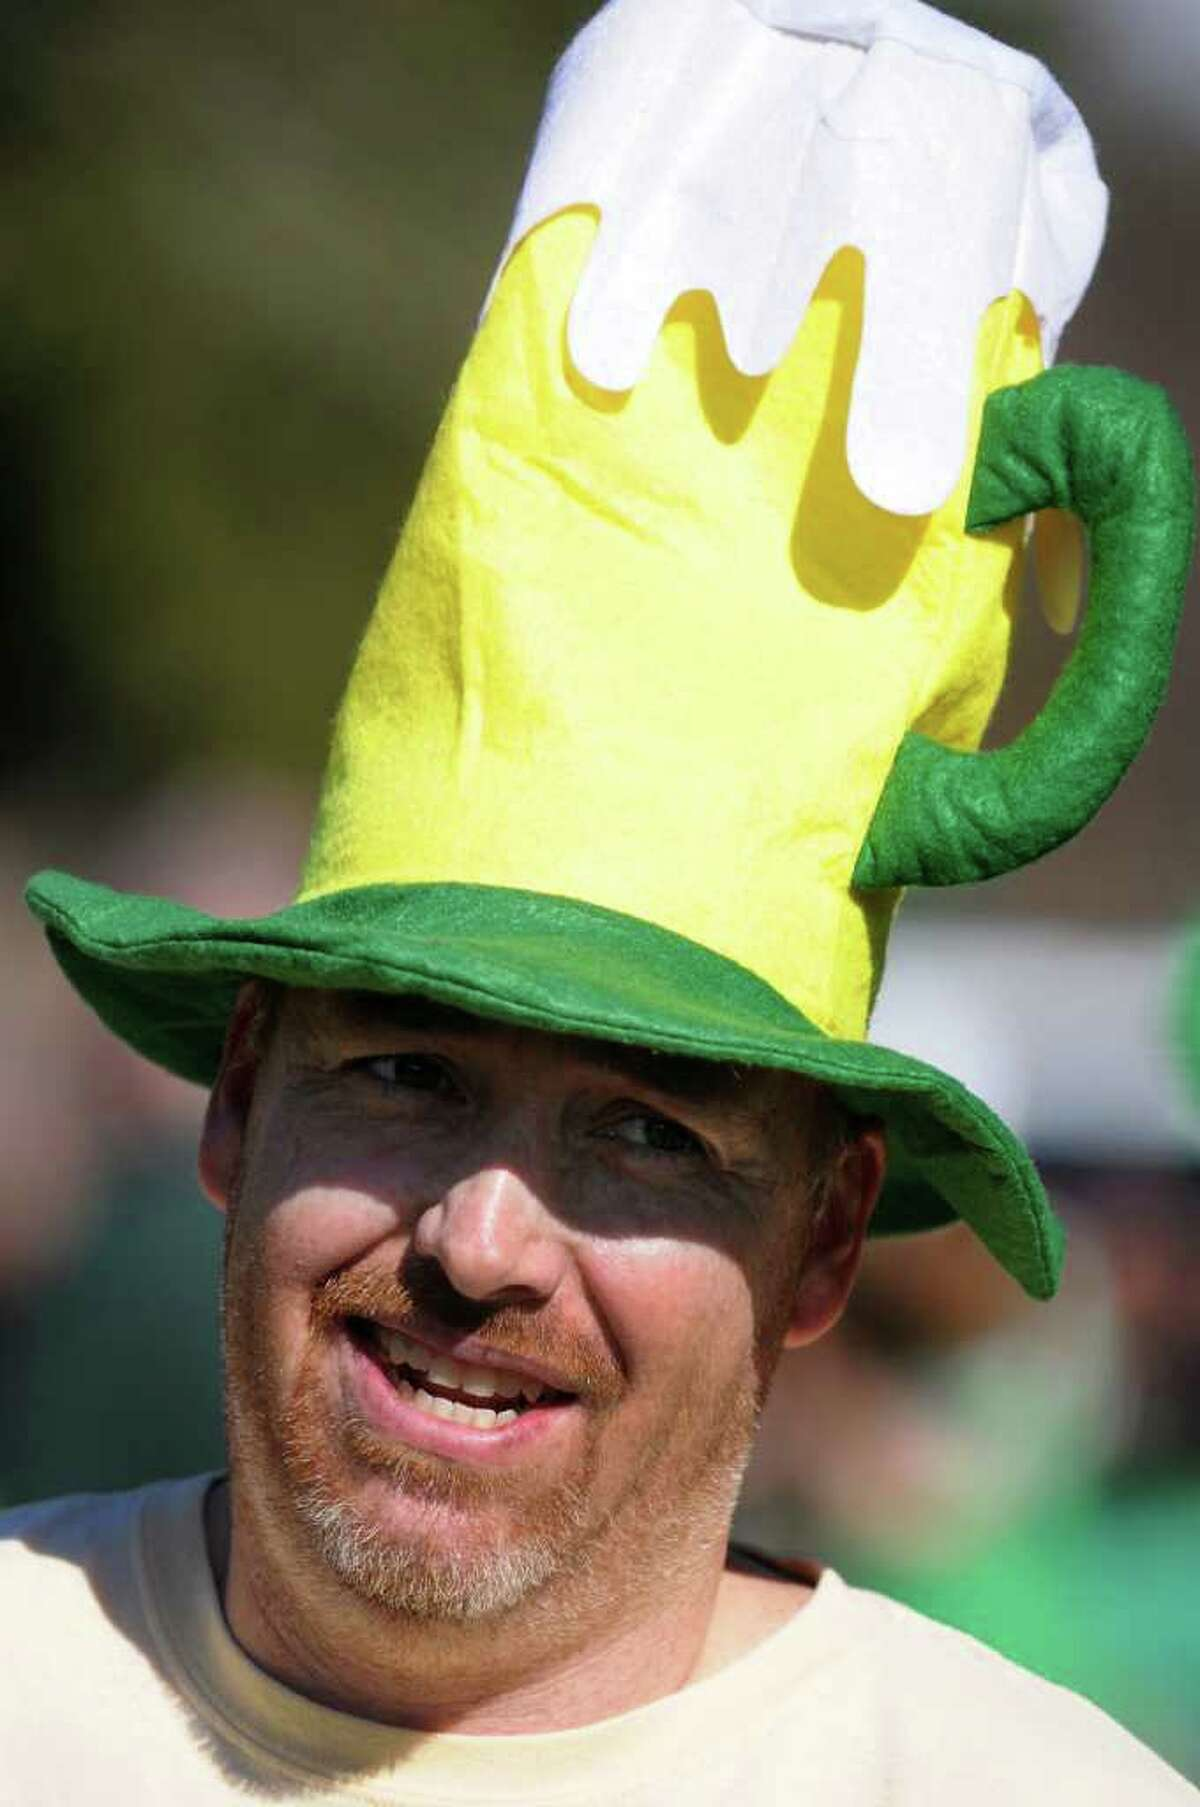 Peter Keating of Halfmoon wears a festive hat as he gets ready to run a 4K during the 1st Annual St. Patrick's Day Kilt Run on Saturday, March 17, 2012, in Averill Park, N.Y. (Cindy Schultz / Times Union)